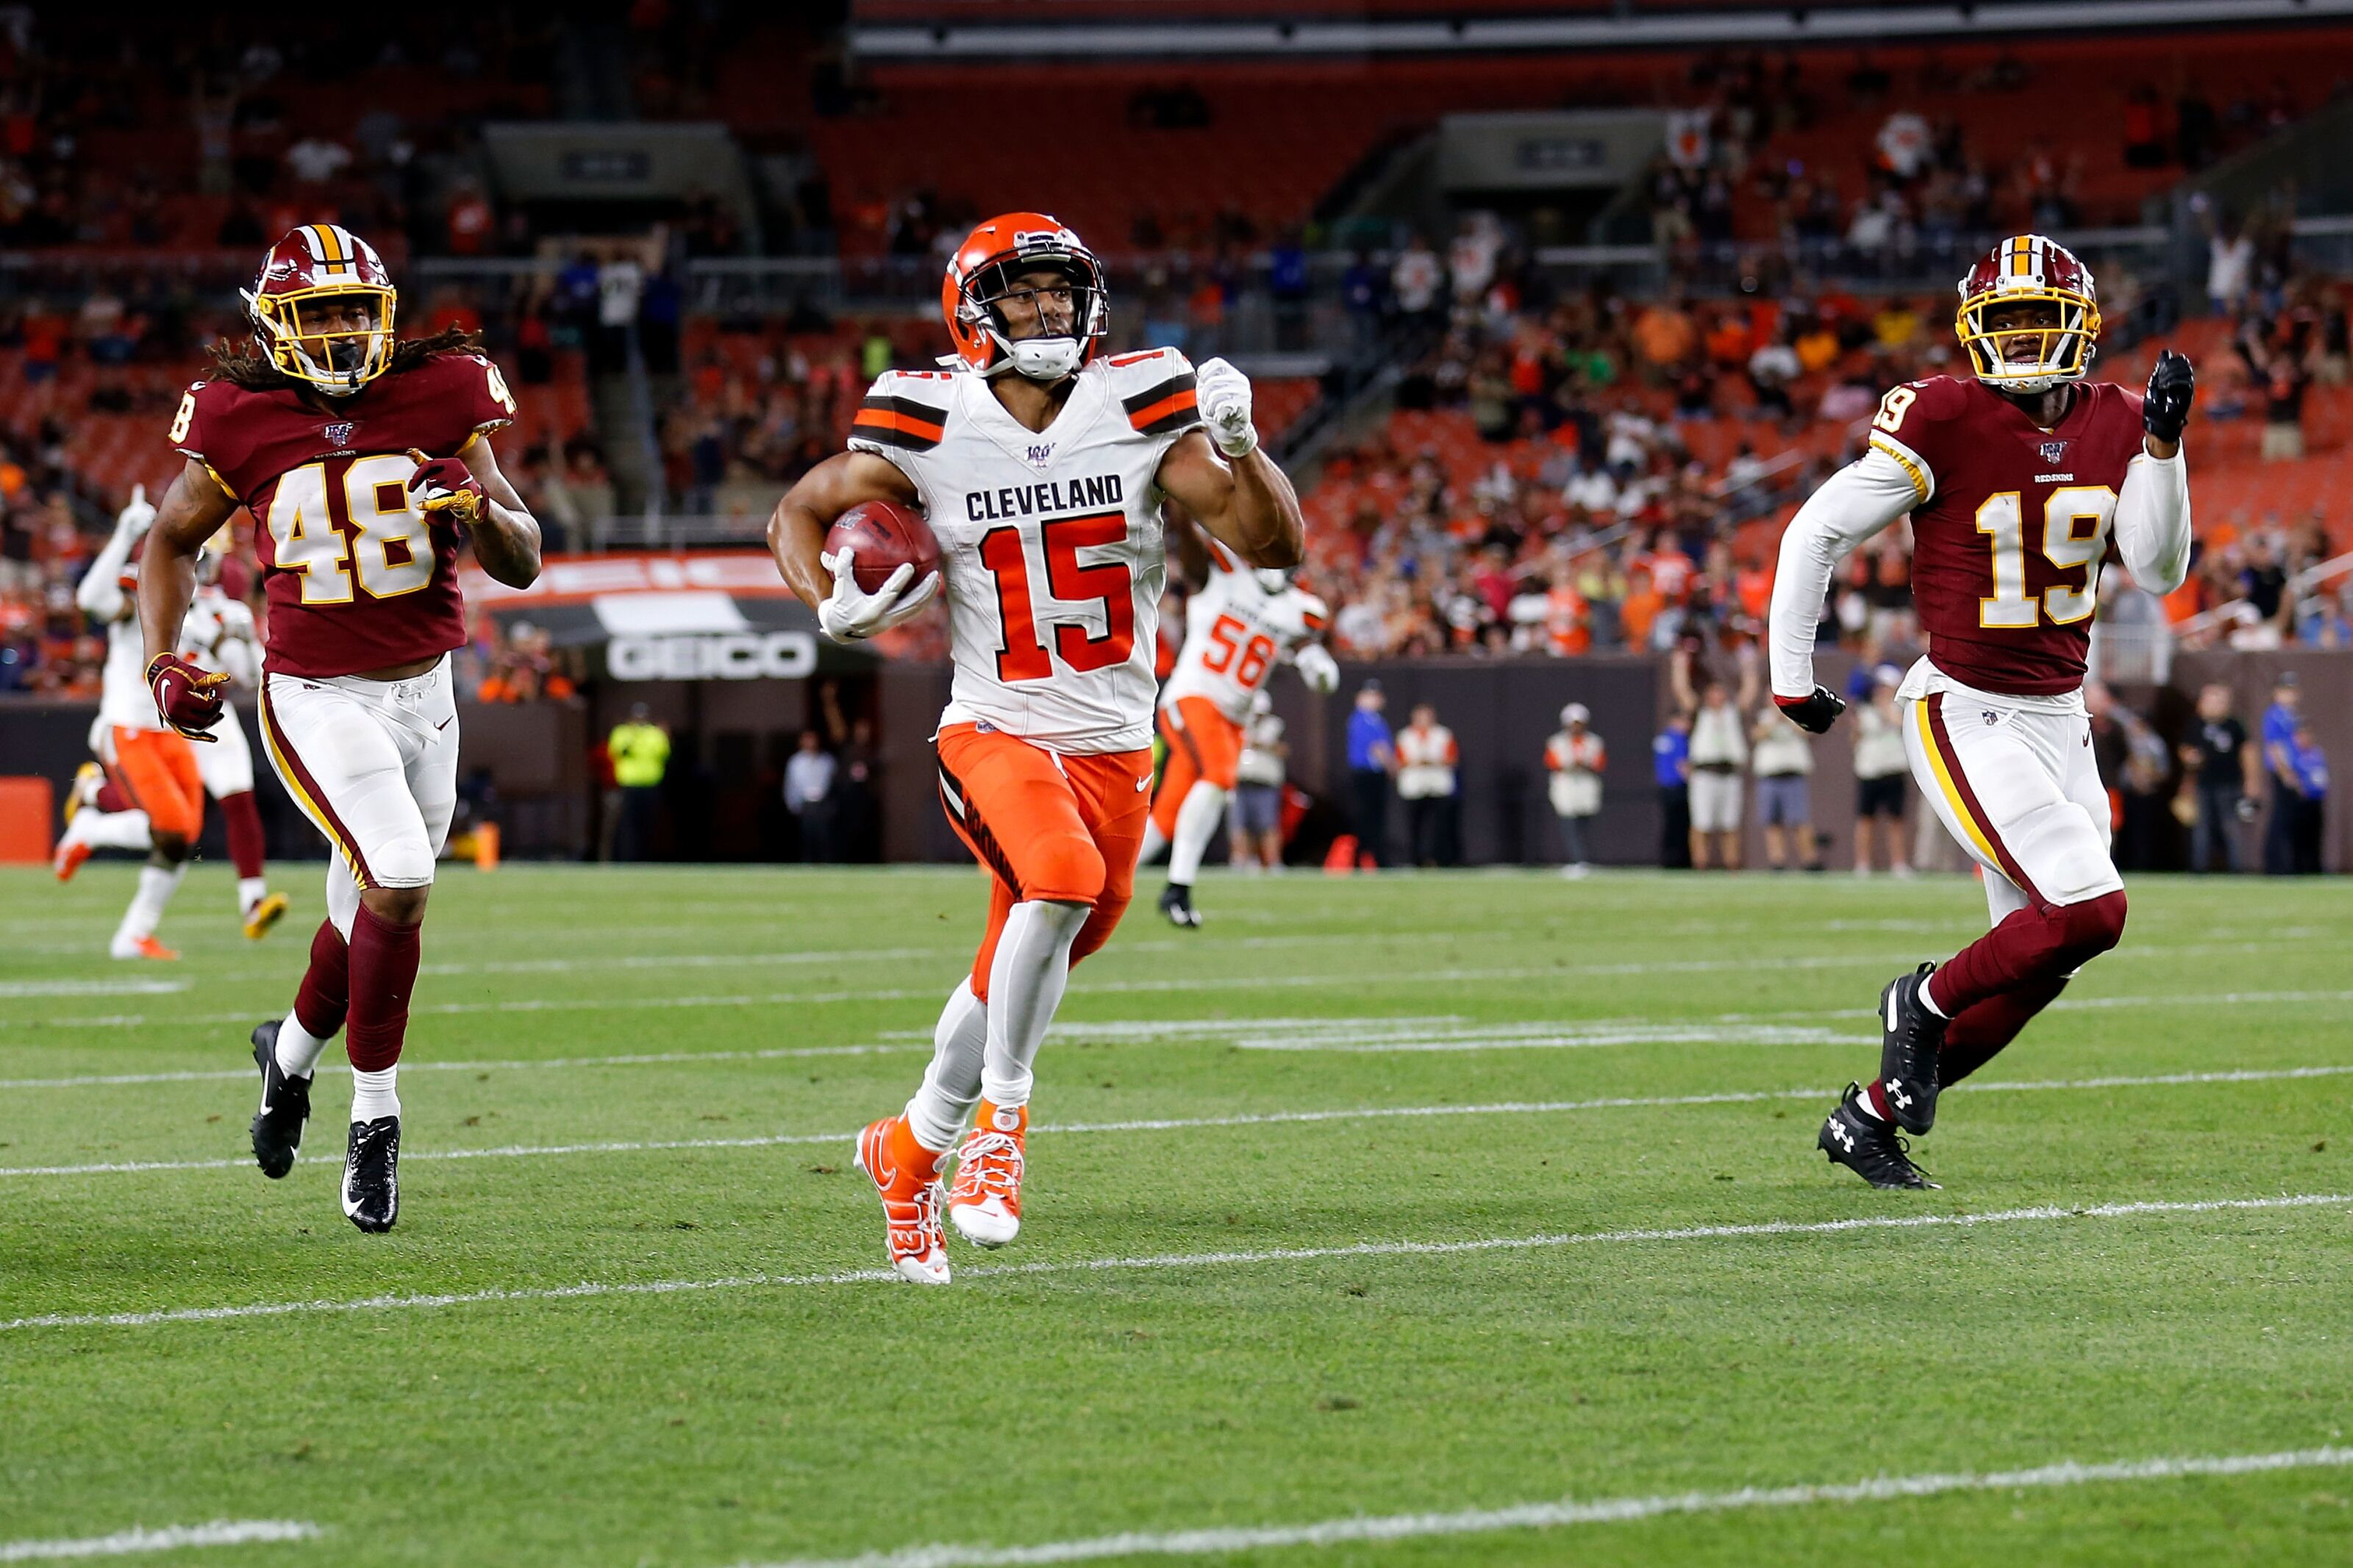 Cleveland Browns: Sheehy-Guiseppi not on final roster 'Right now'